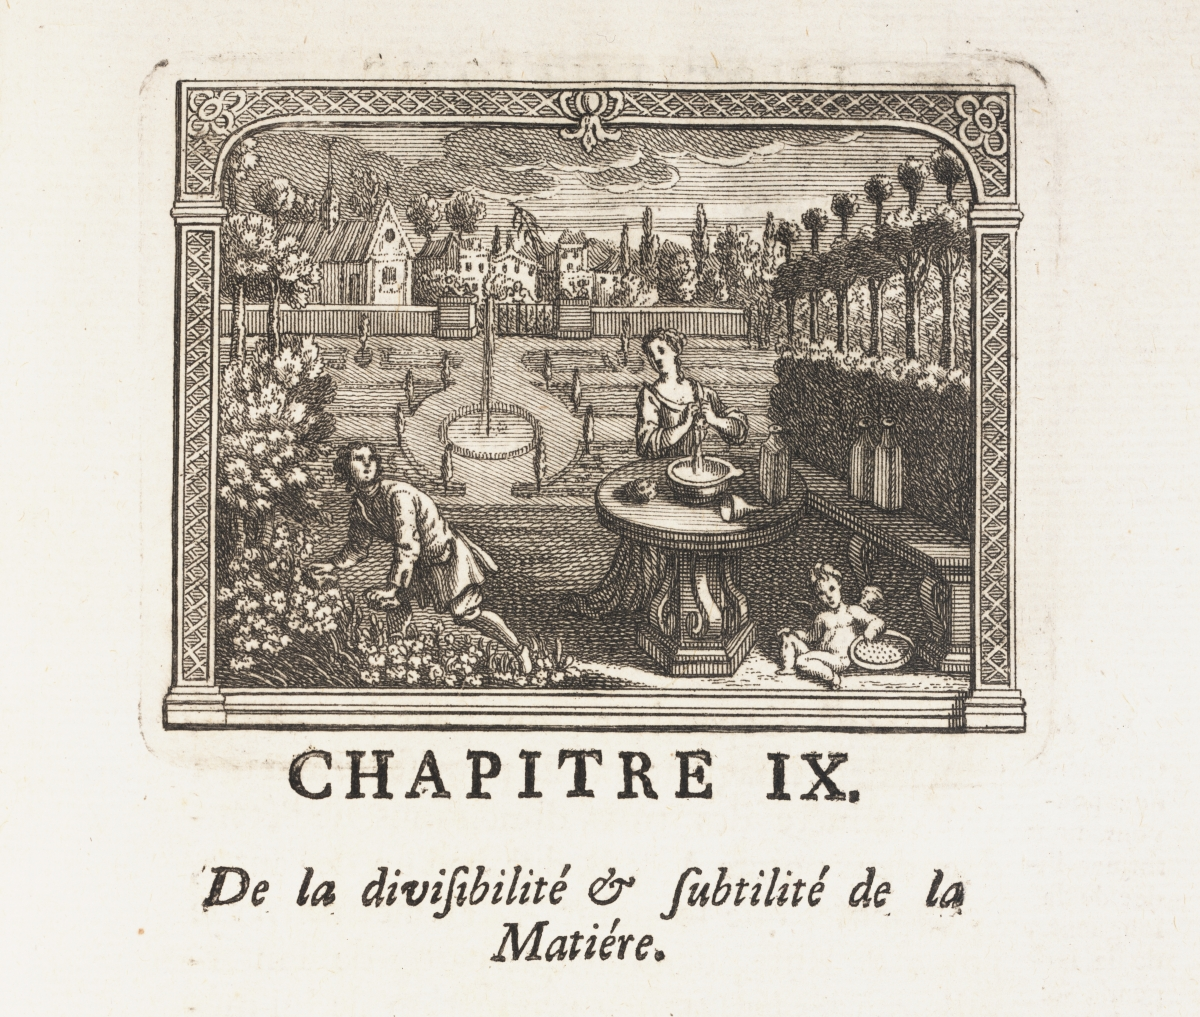 Image from du Chatelet's Institutions de Physique.